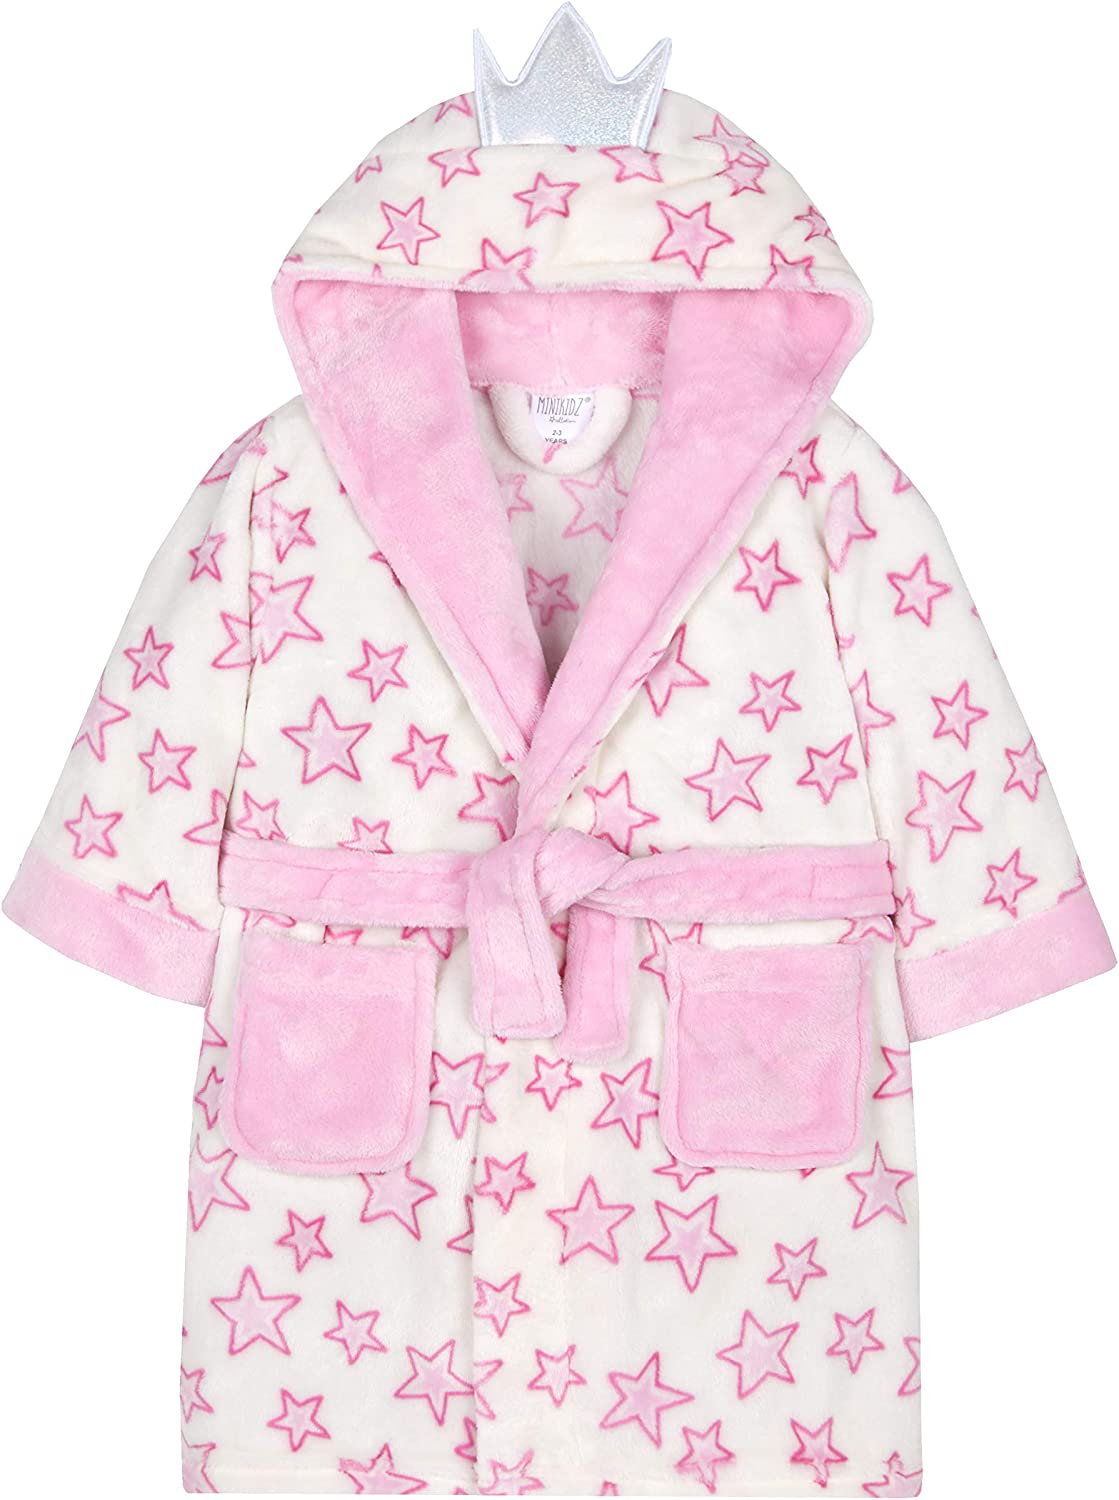 Minikidz Childrens Fairy Princess Dressing Gown with Wings